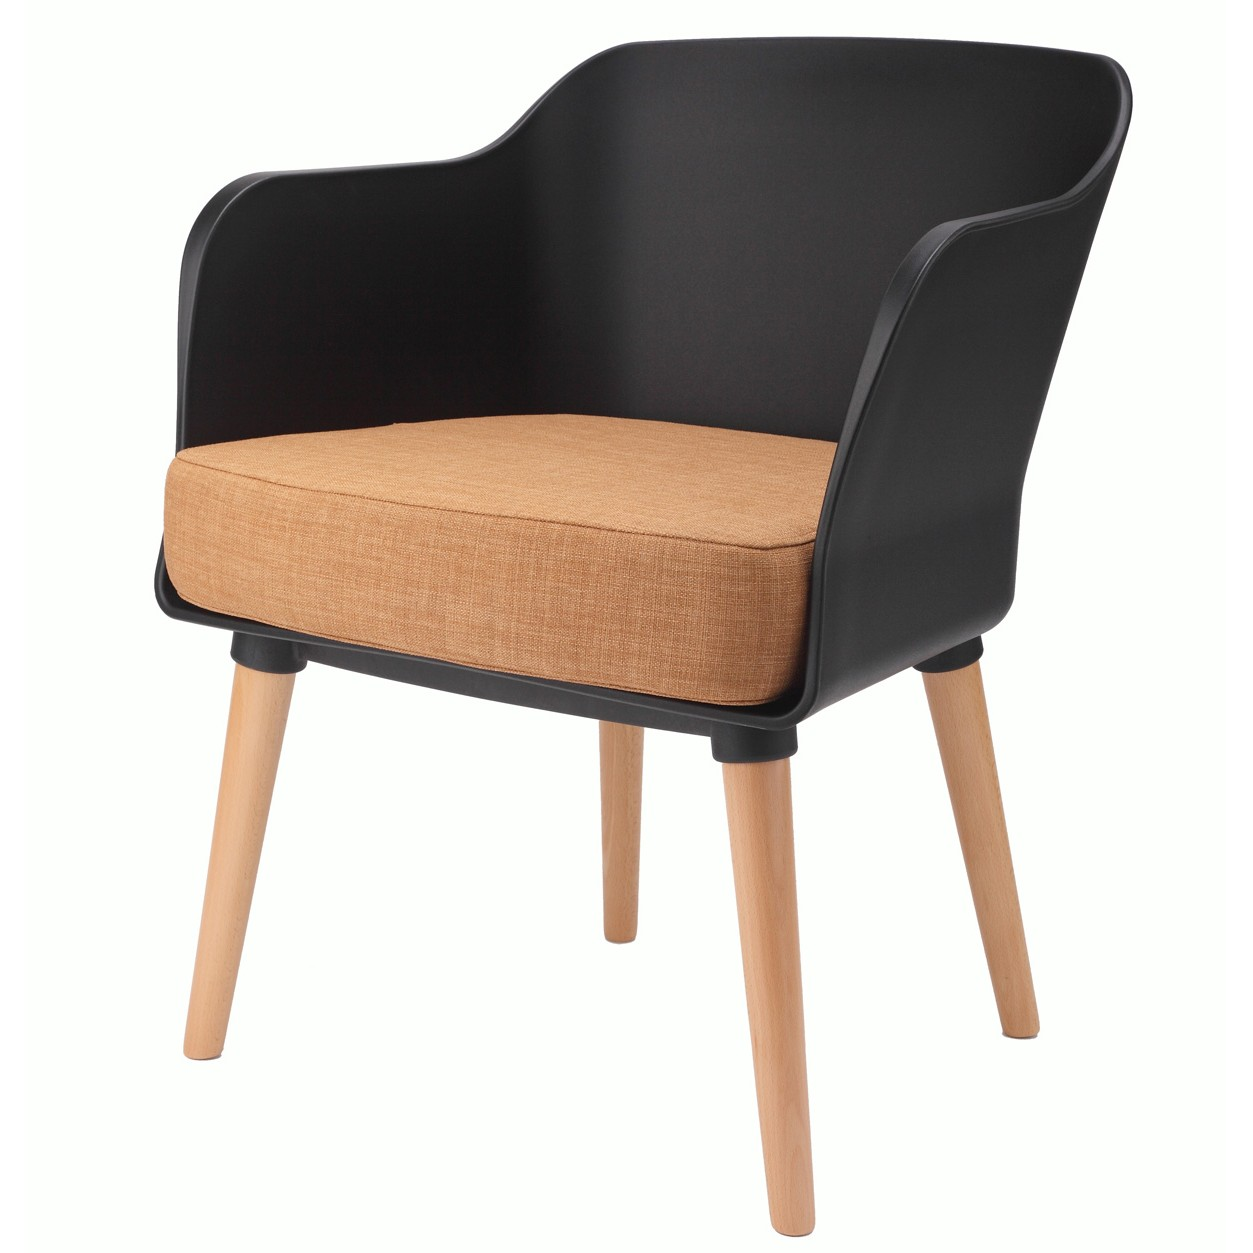 Modern Accent Armchair Black with Orange Cushion